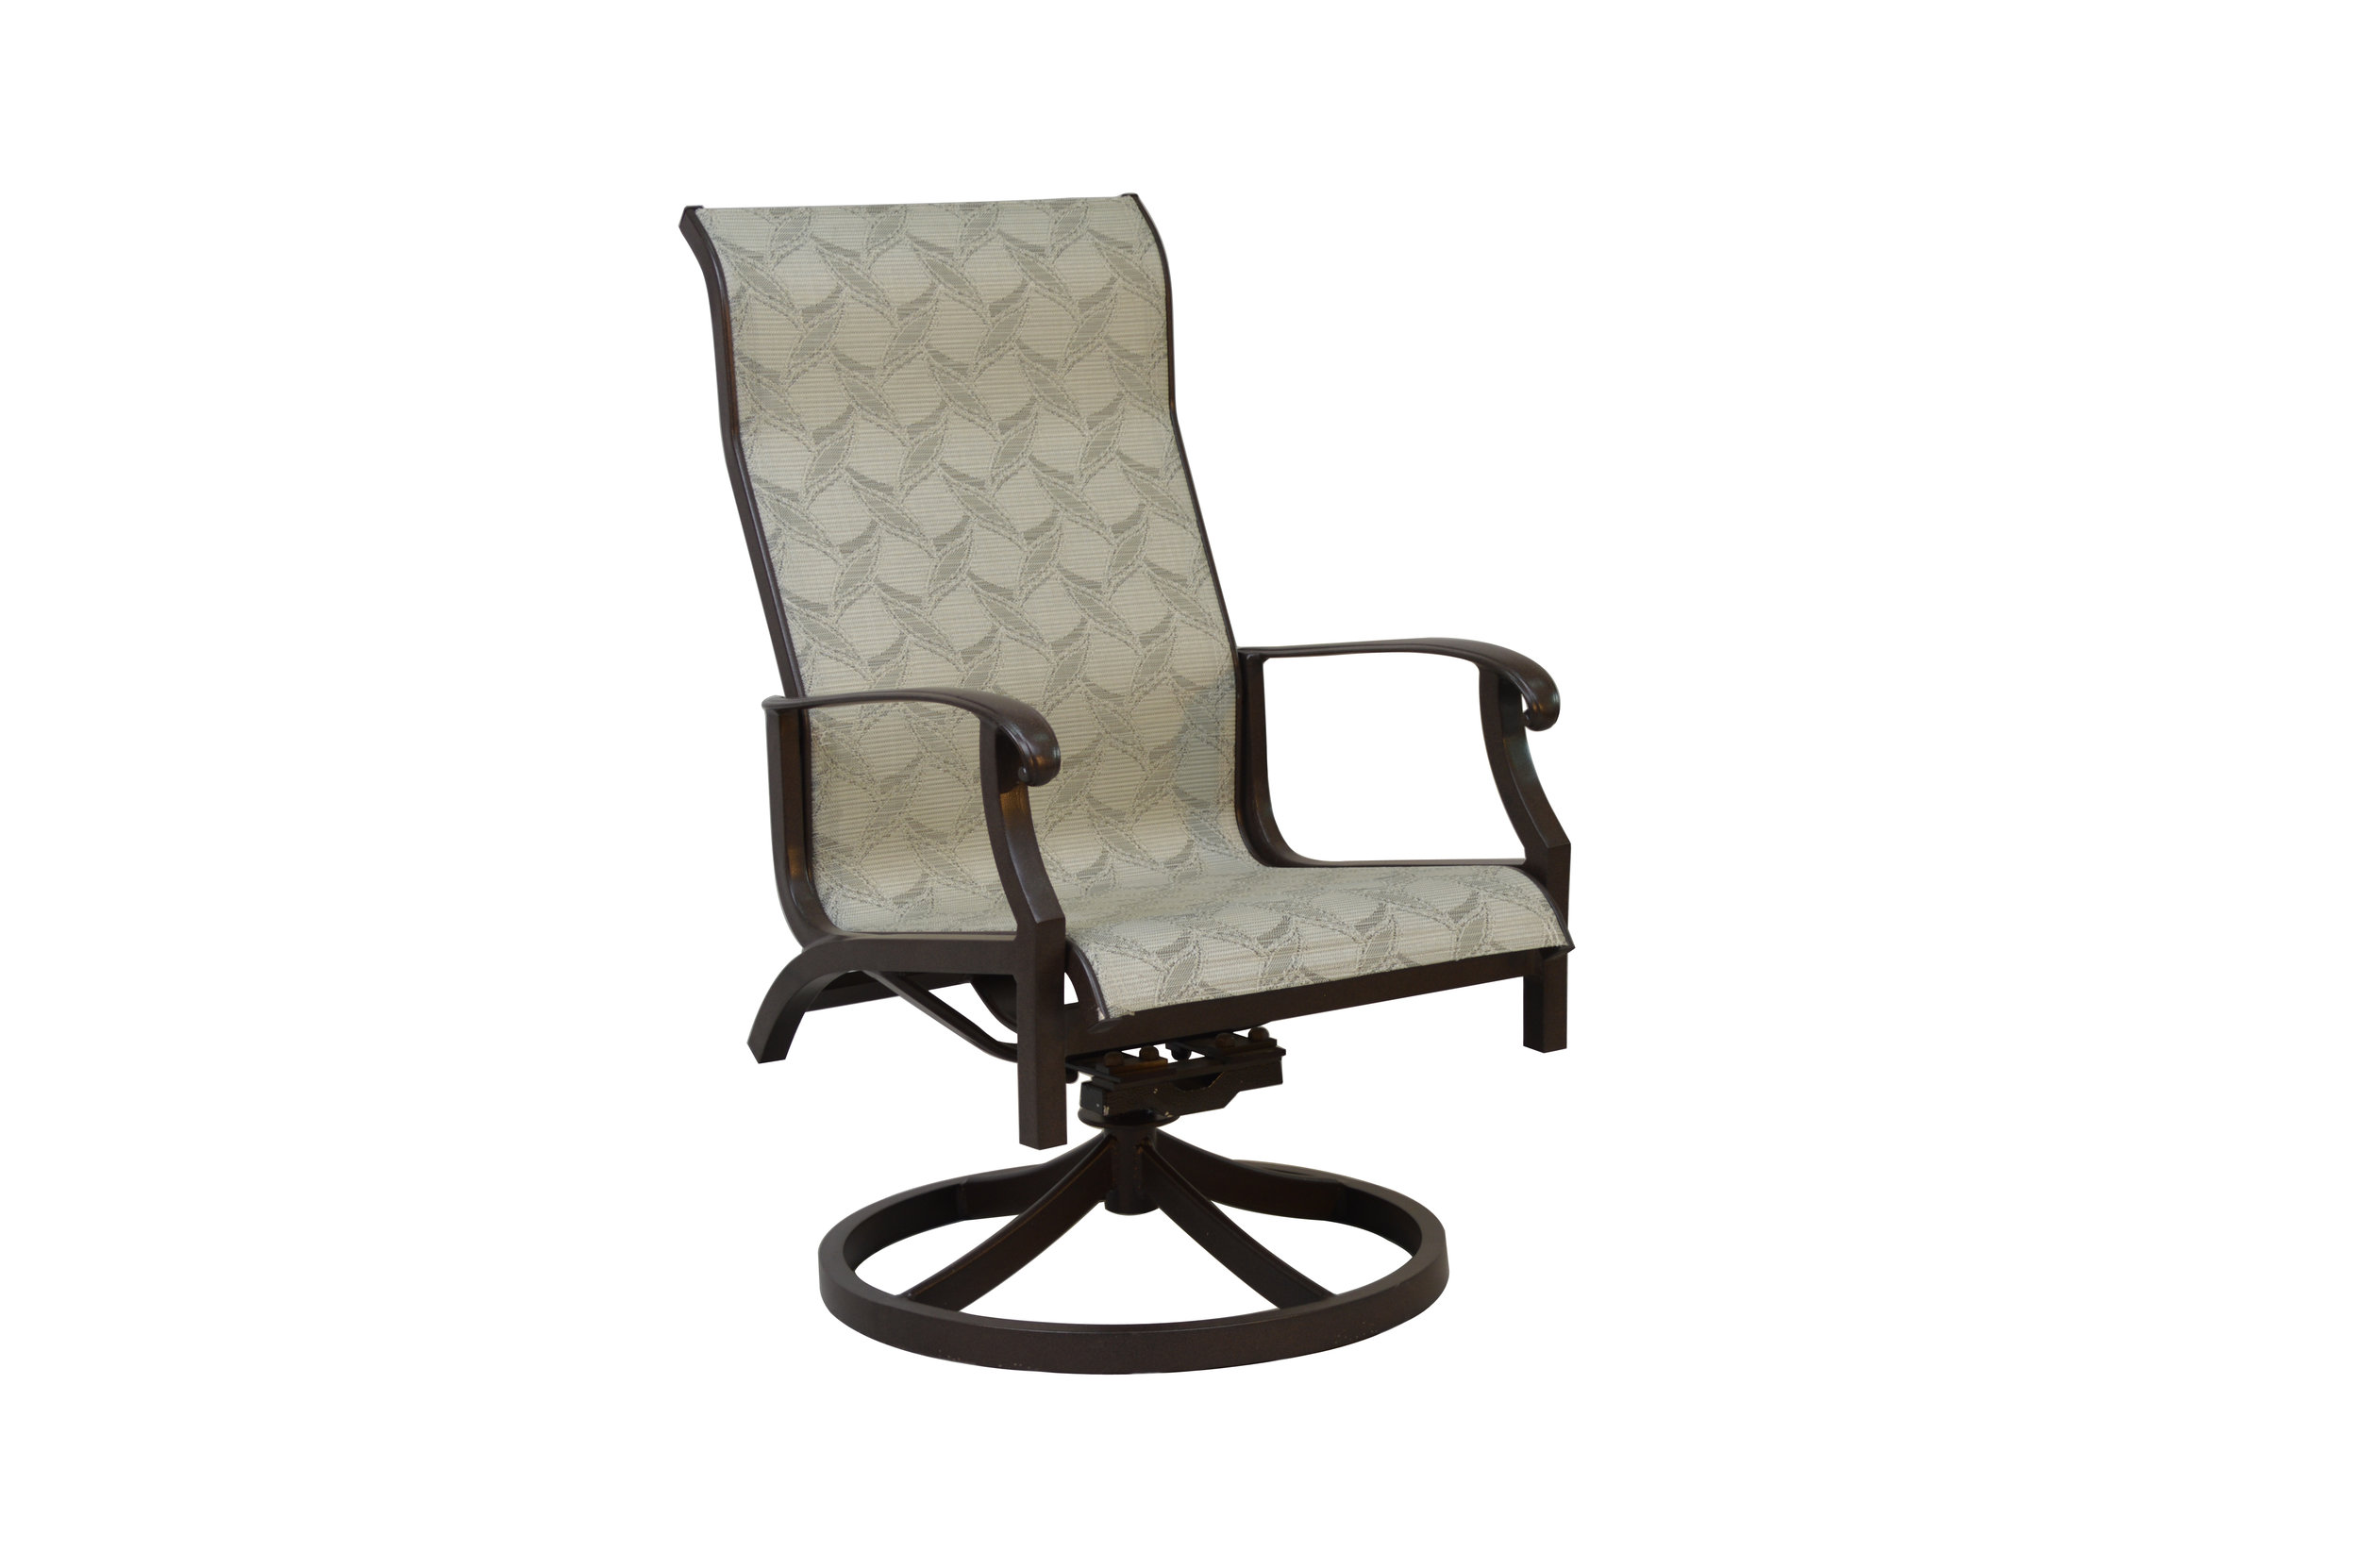 602323 Laguna Dining Swivel Rocker   24.2 x 29.2 x 42